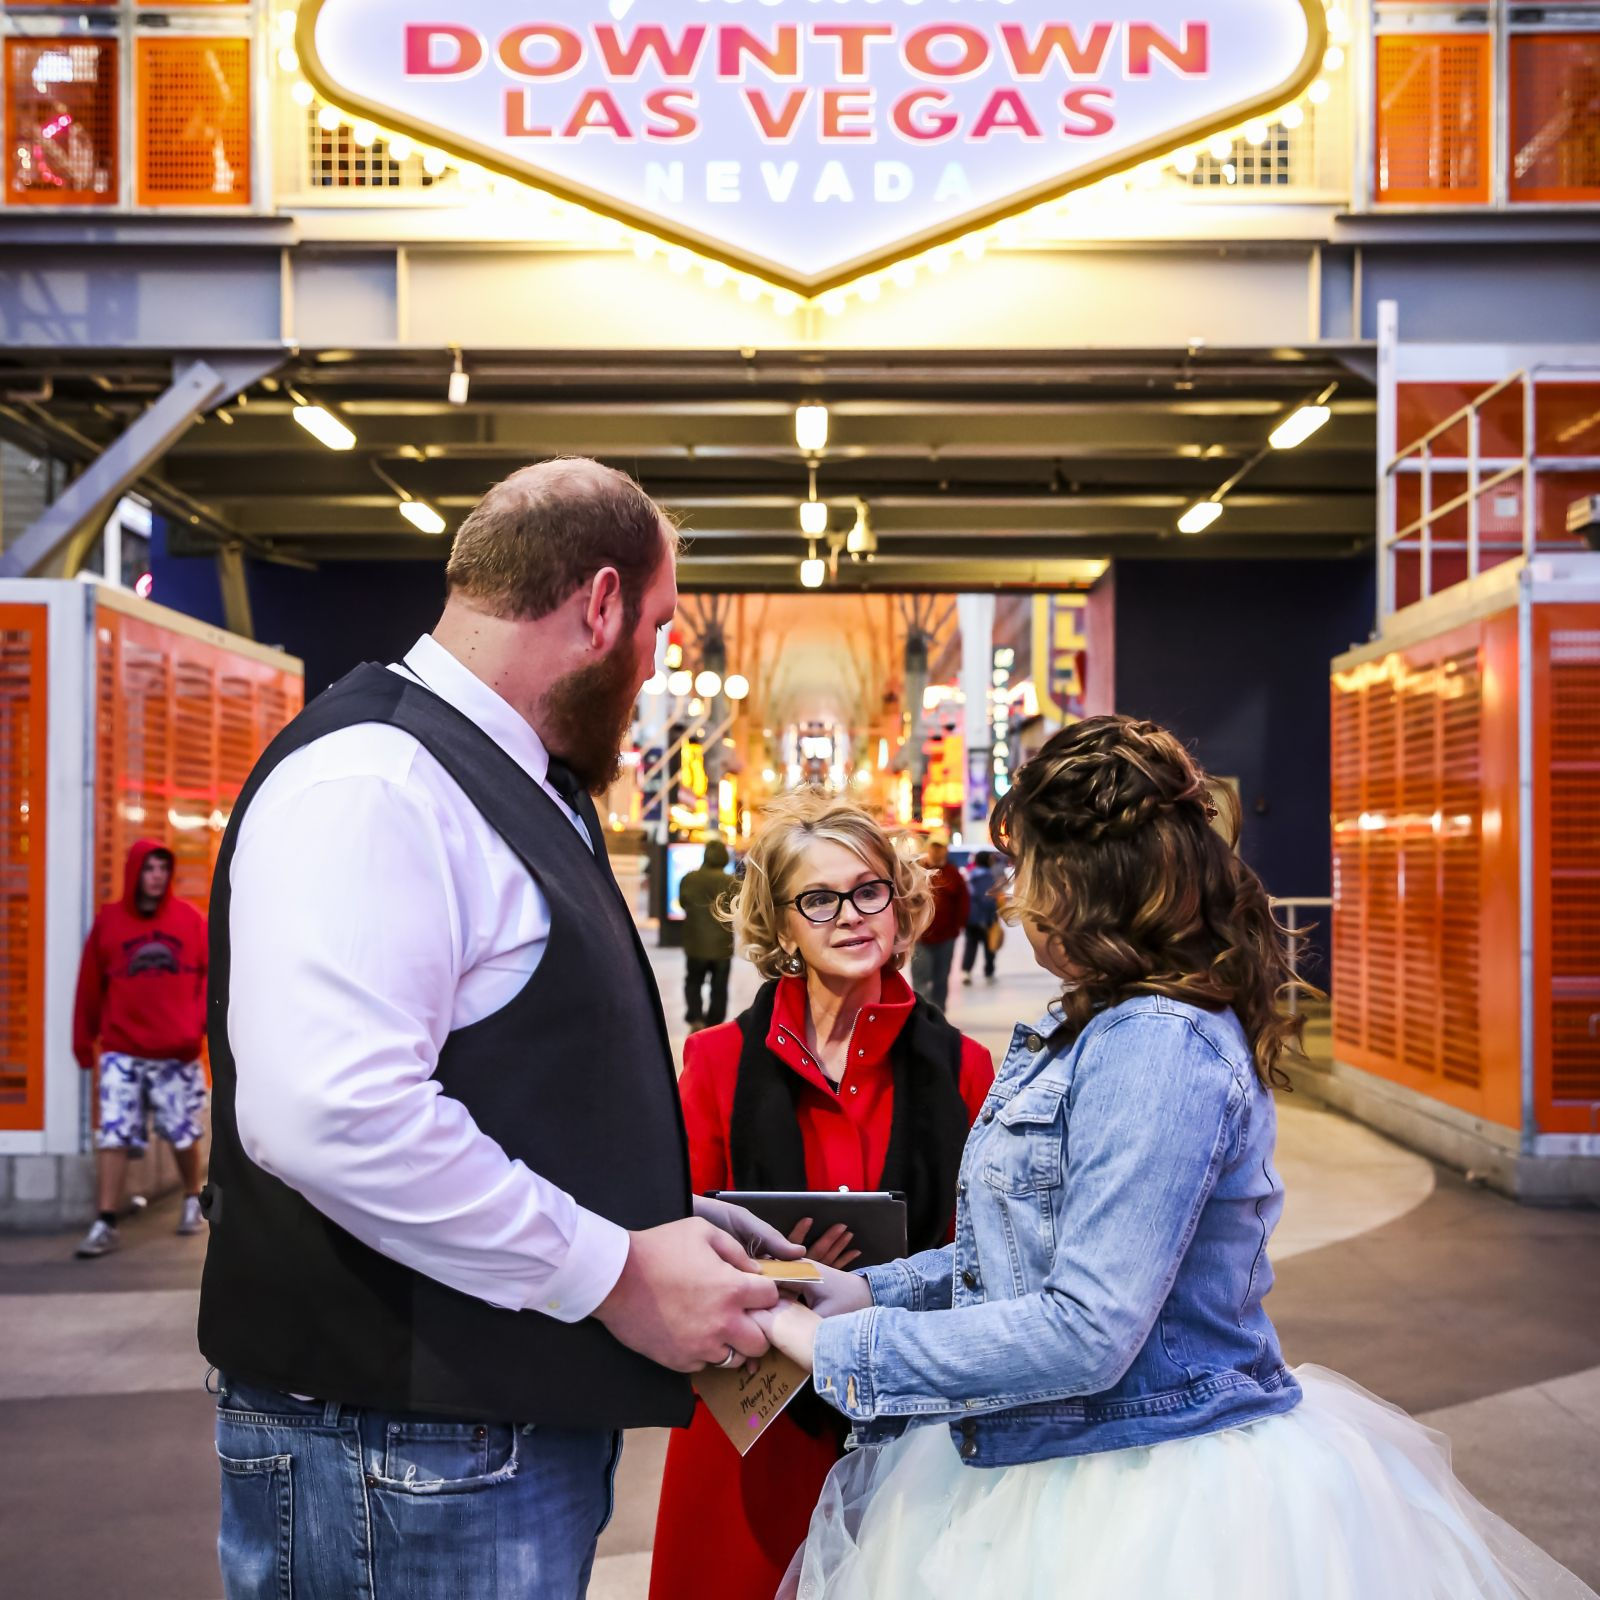 Las Vegas Wedding Officiant - Fremont Street